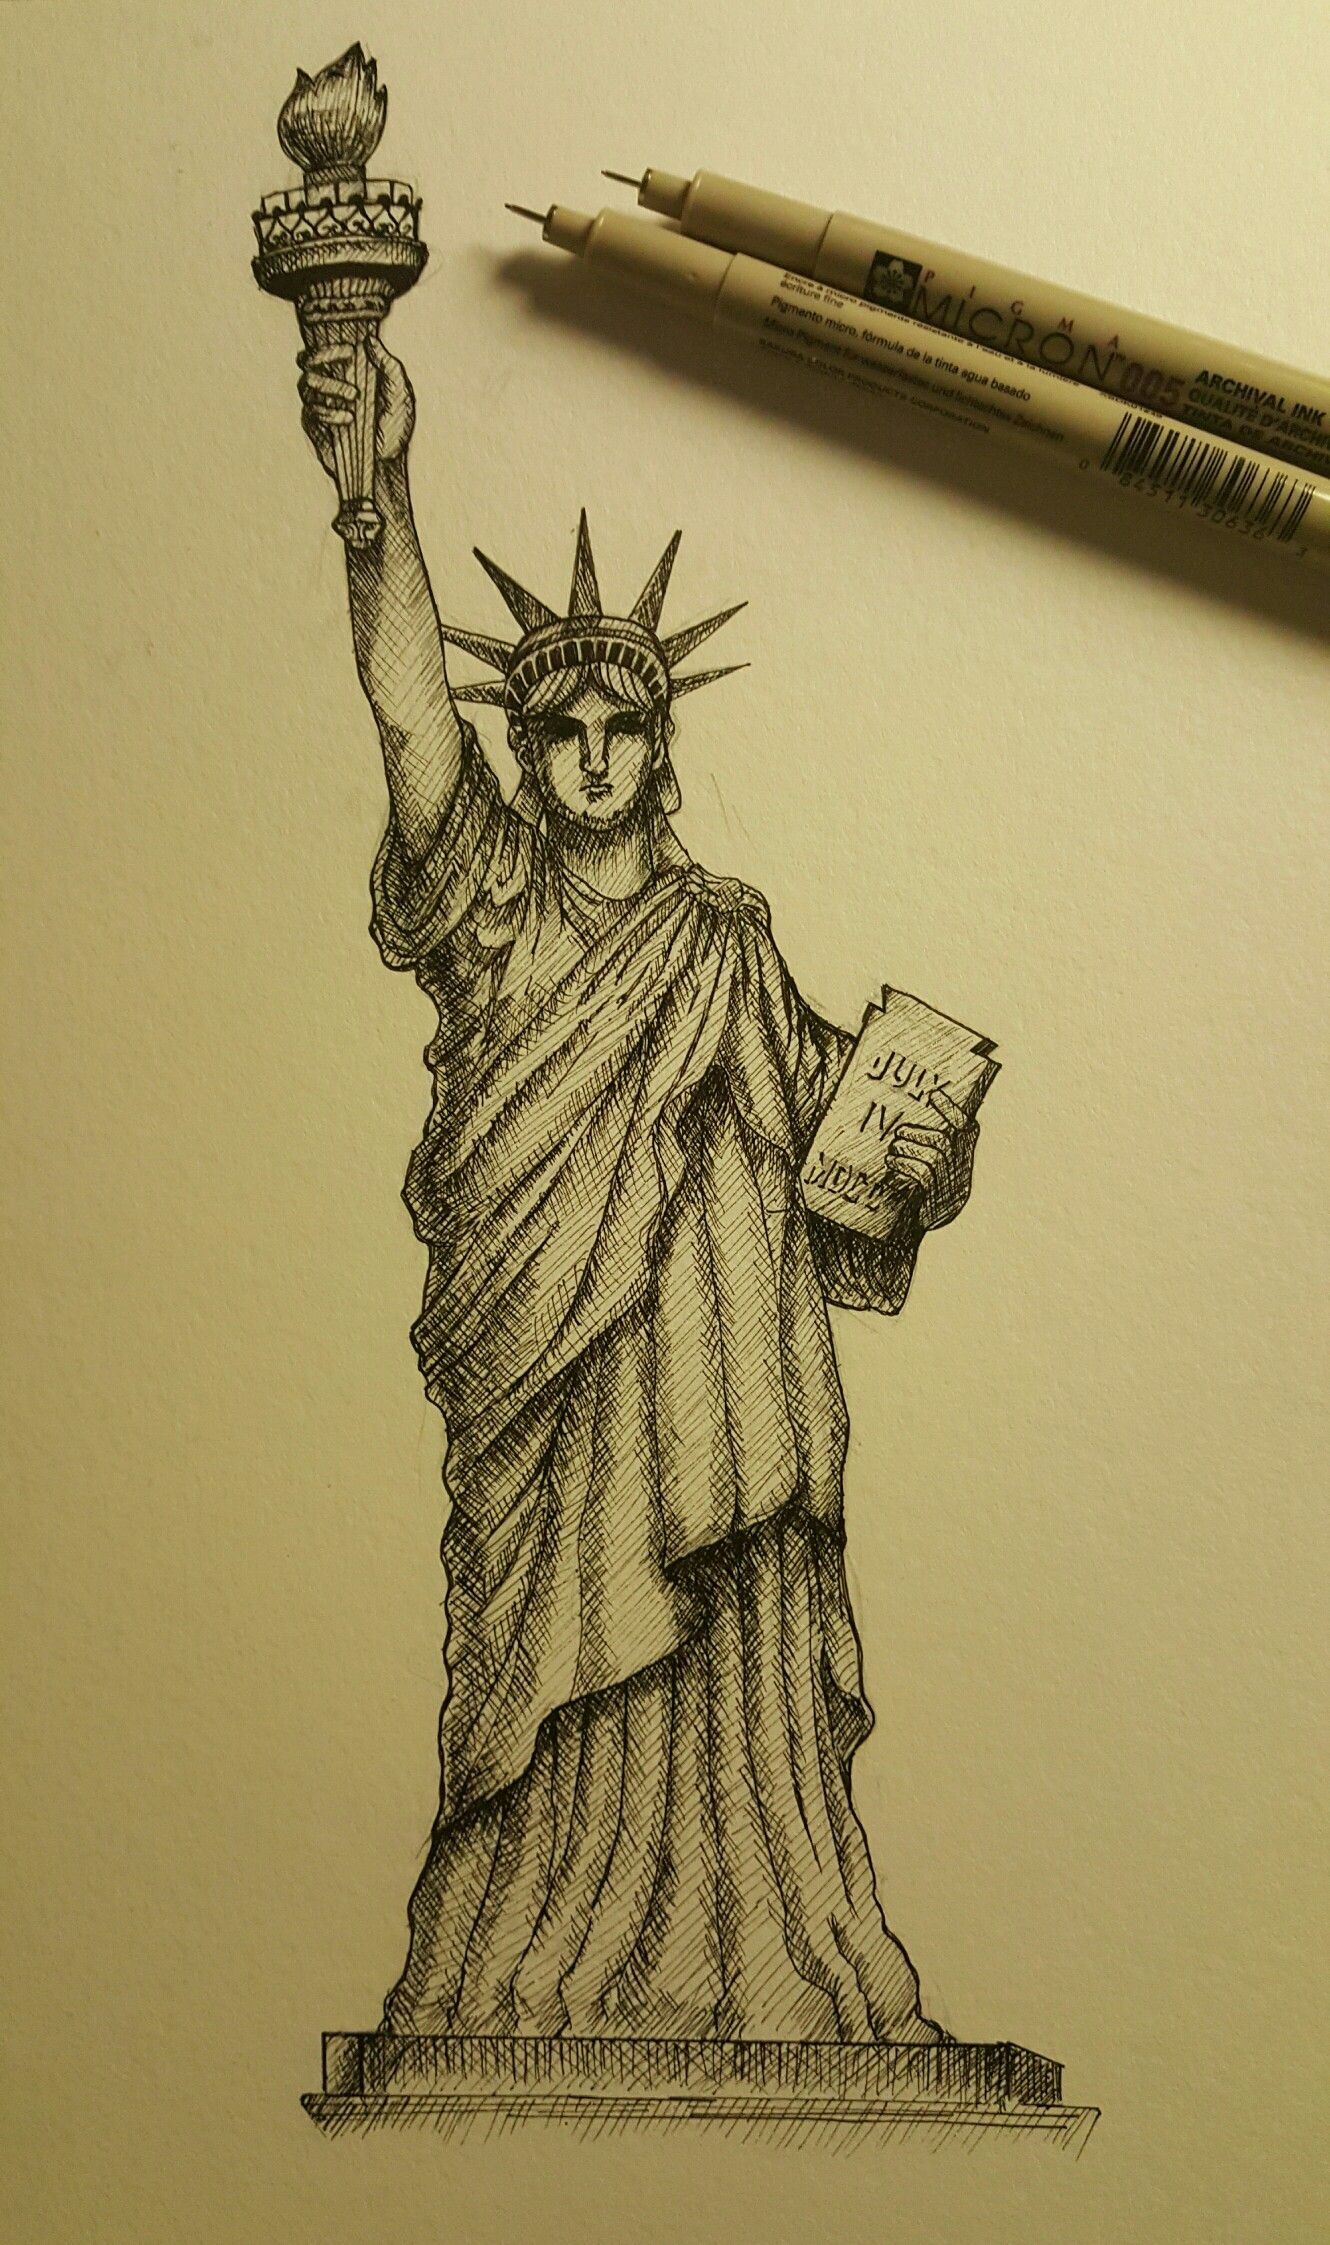 Statue of liberty cross hatching technique drawings in 2019